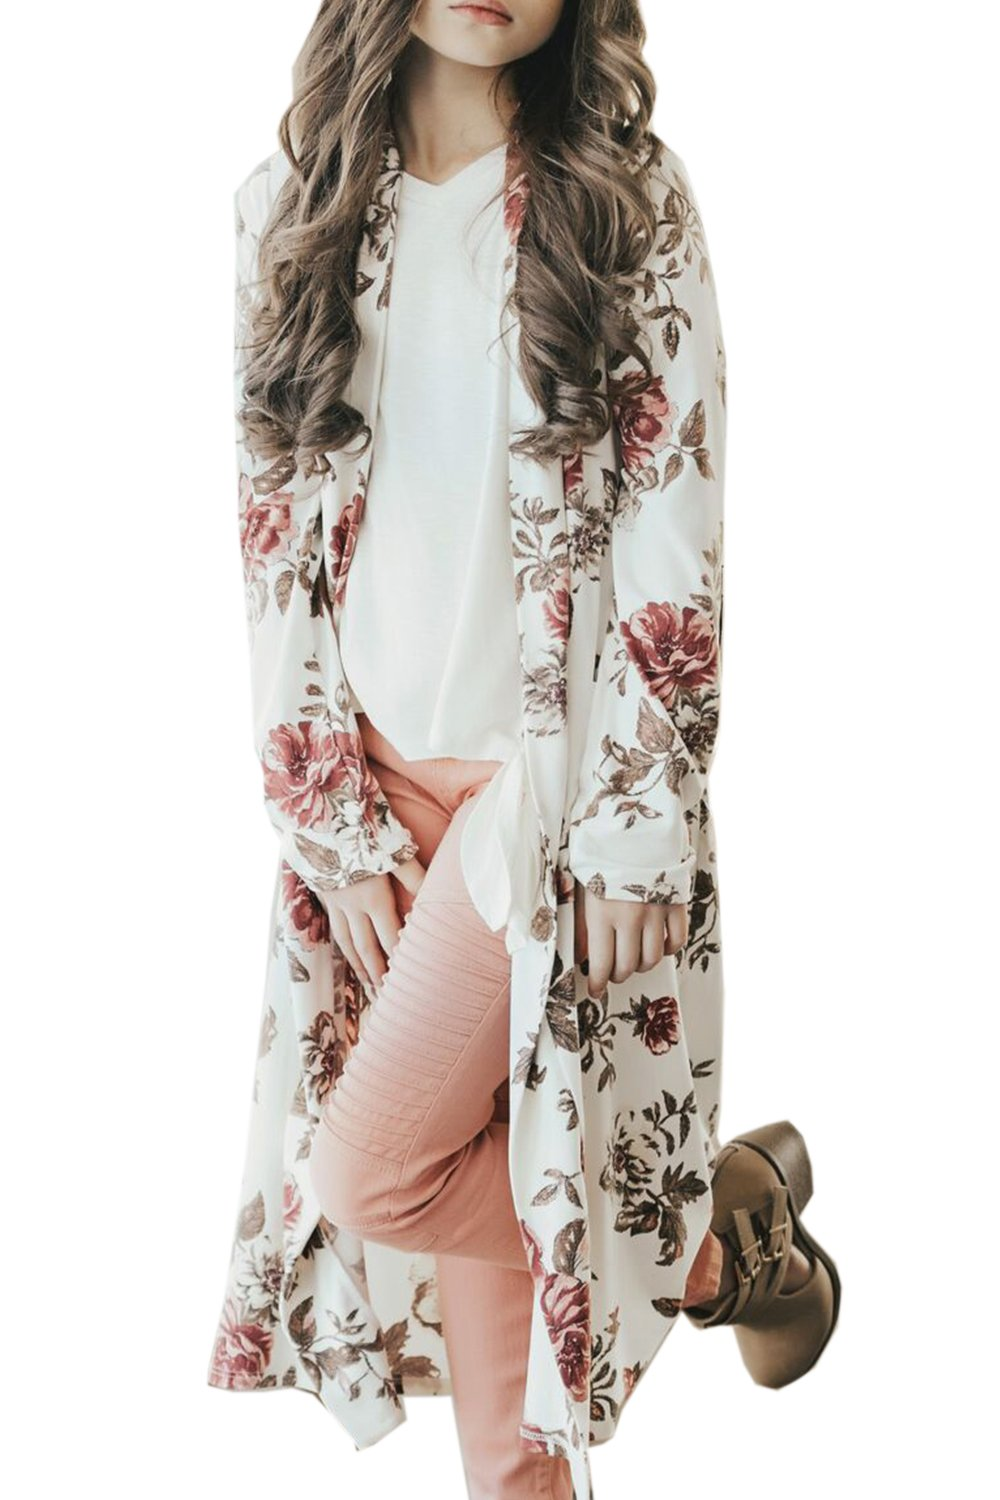 Geckatte Toddler Girls Floral Cardigan Loose Long Open Front Shawl Kimono Capes Blouse Top